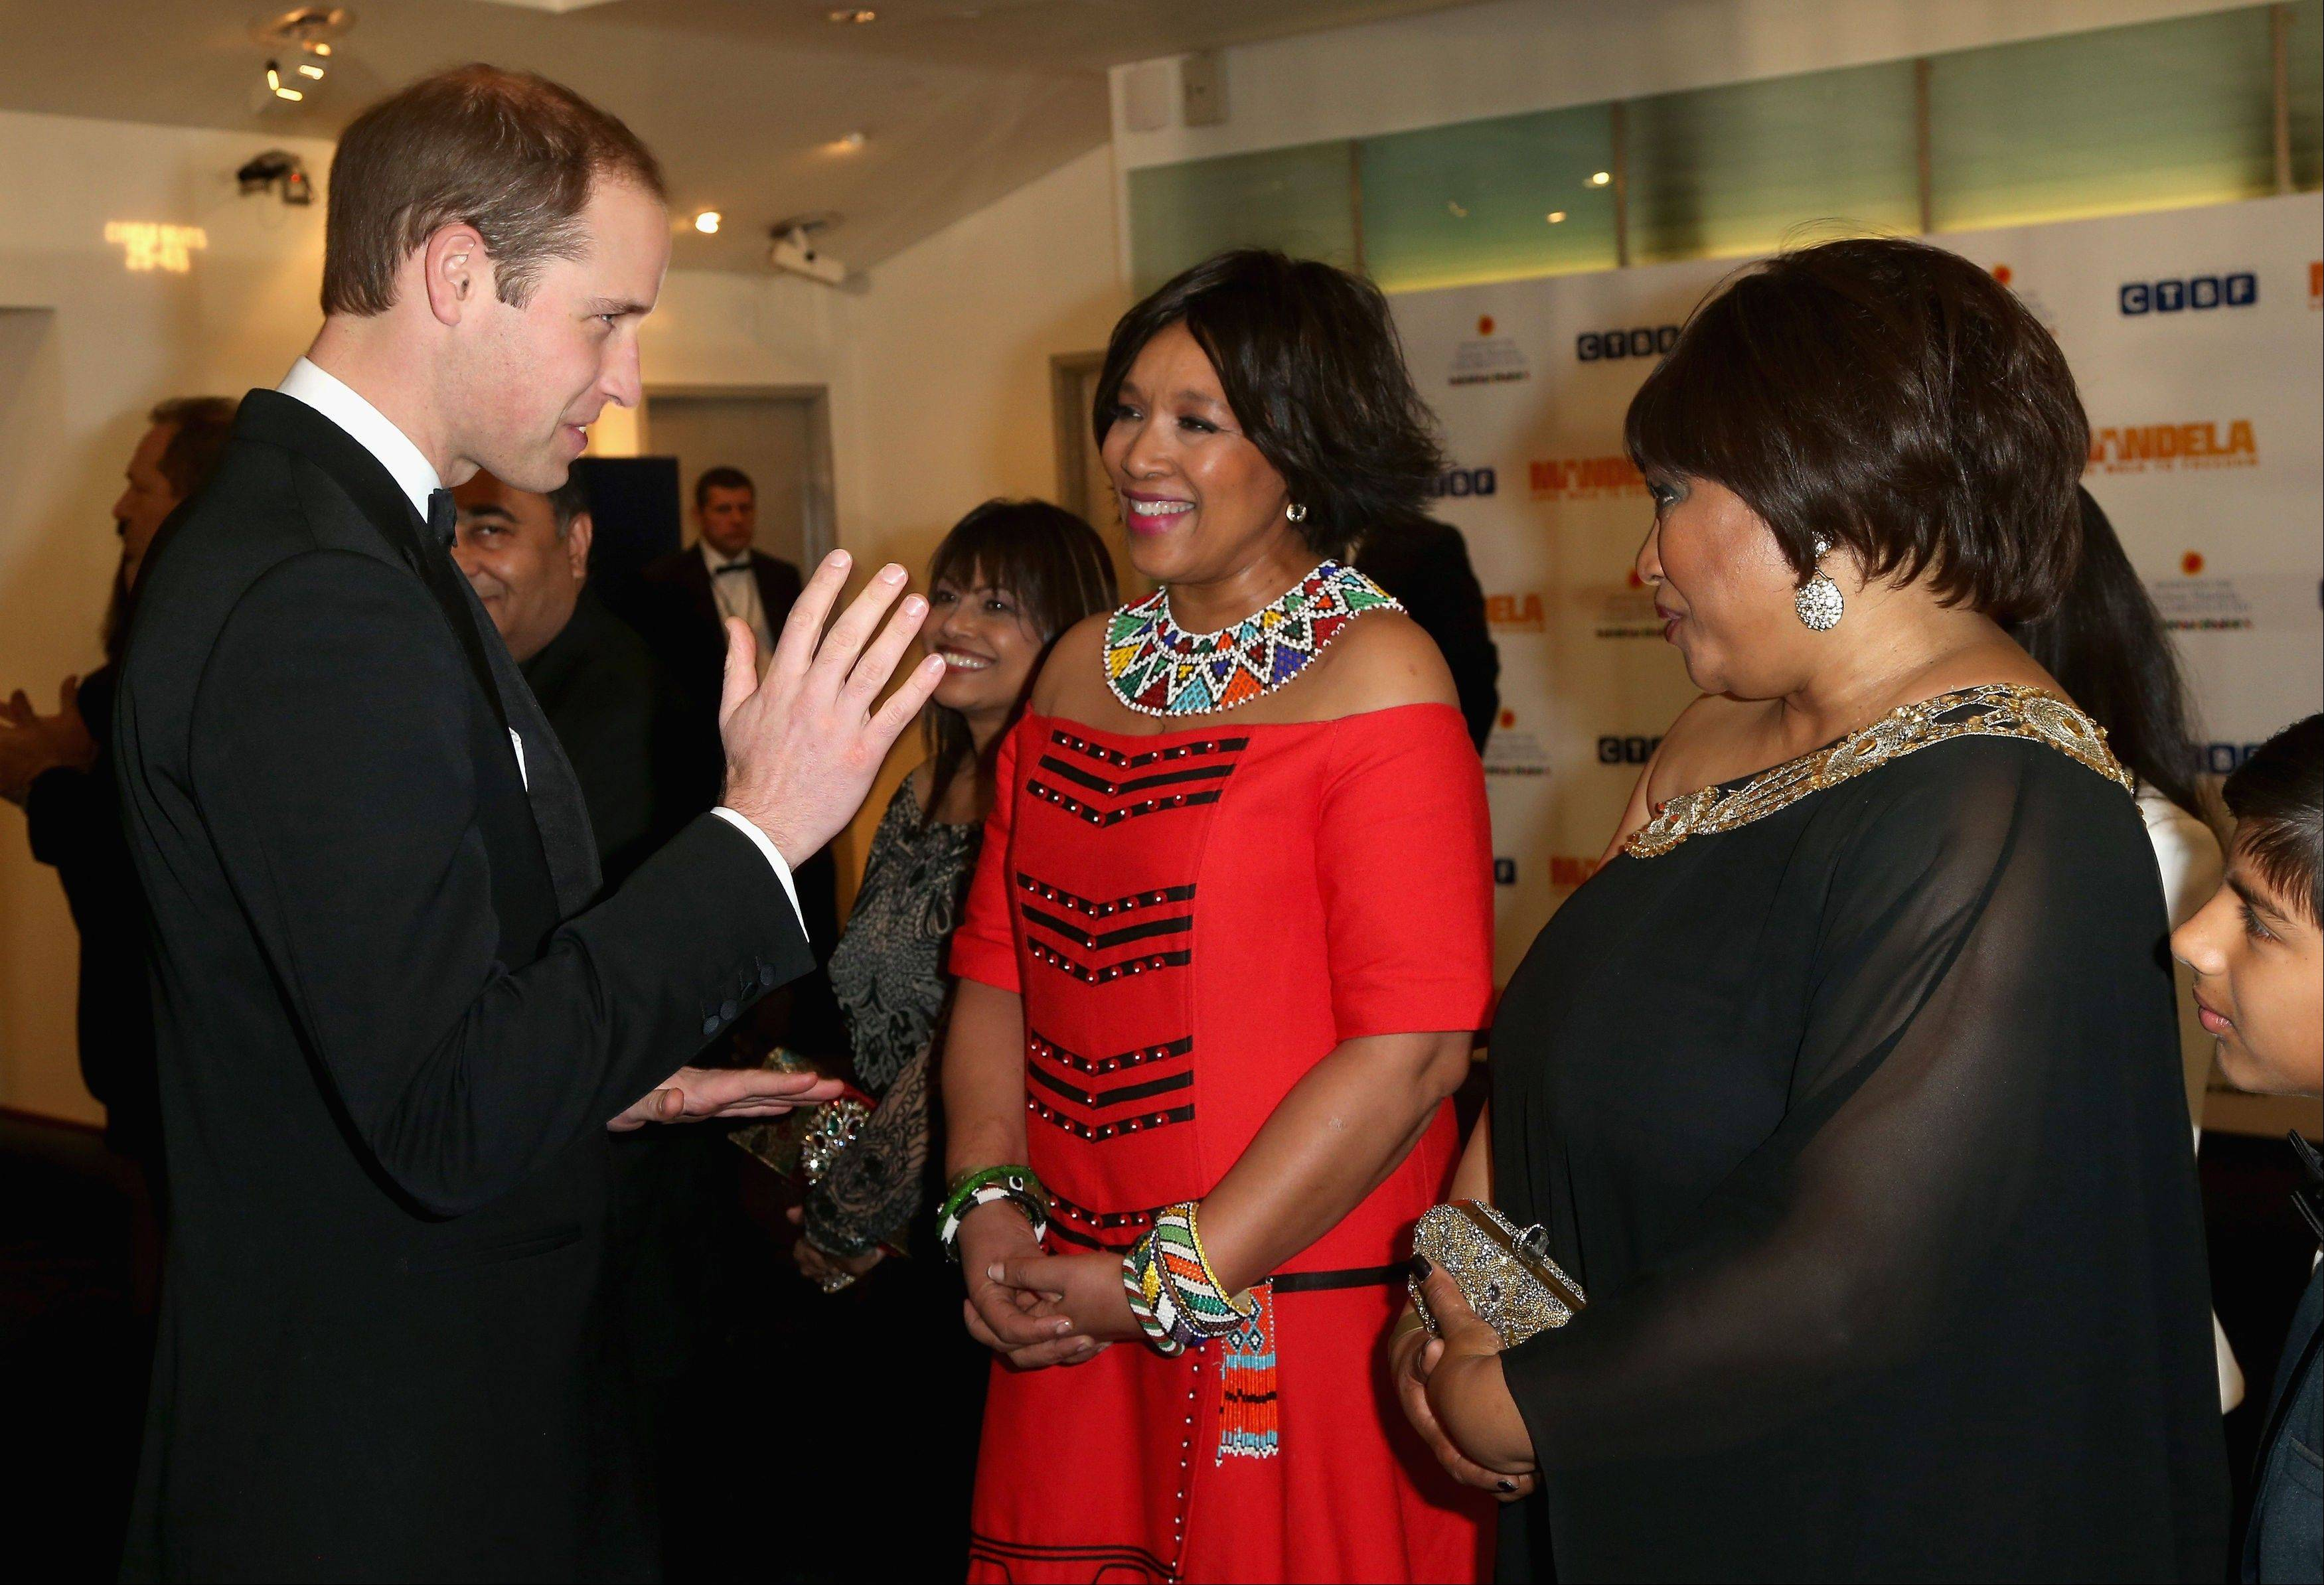 Britain�s Prince William, Duke of Cambridge, meets Zindzi Mandela, right, daughter of former South African President, Nelson Mandela, as they attend the Royal Film Performance of �Mandela: Long Walk to Freedom,� in London on Thursday.